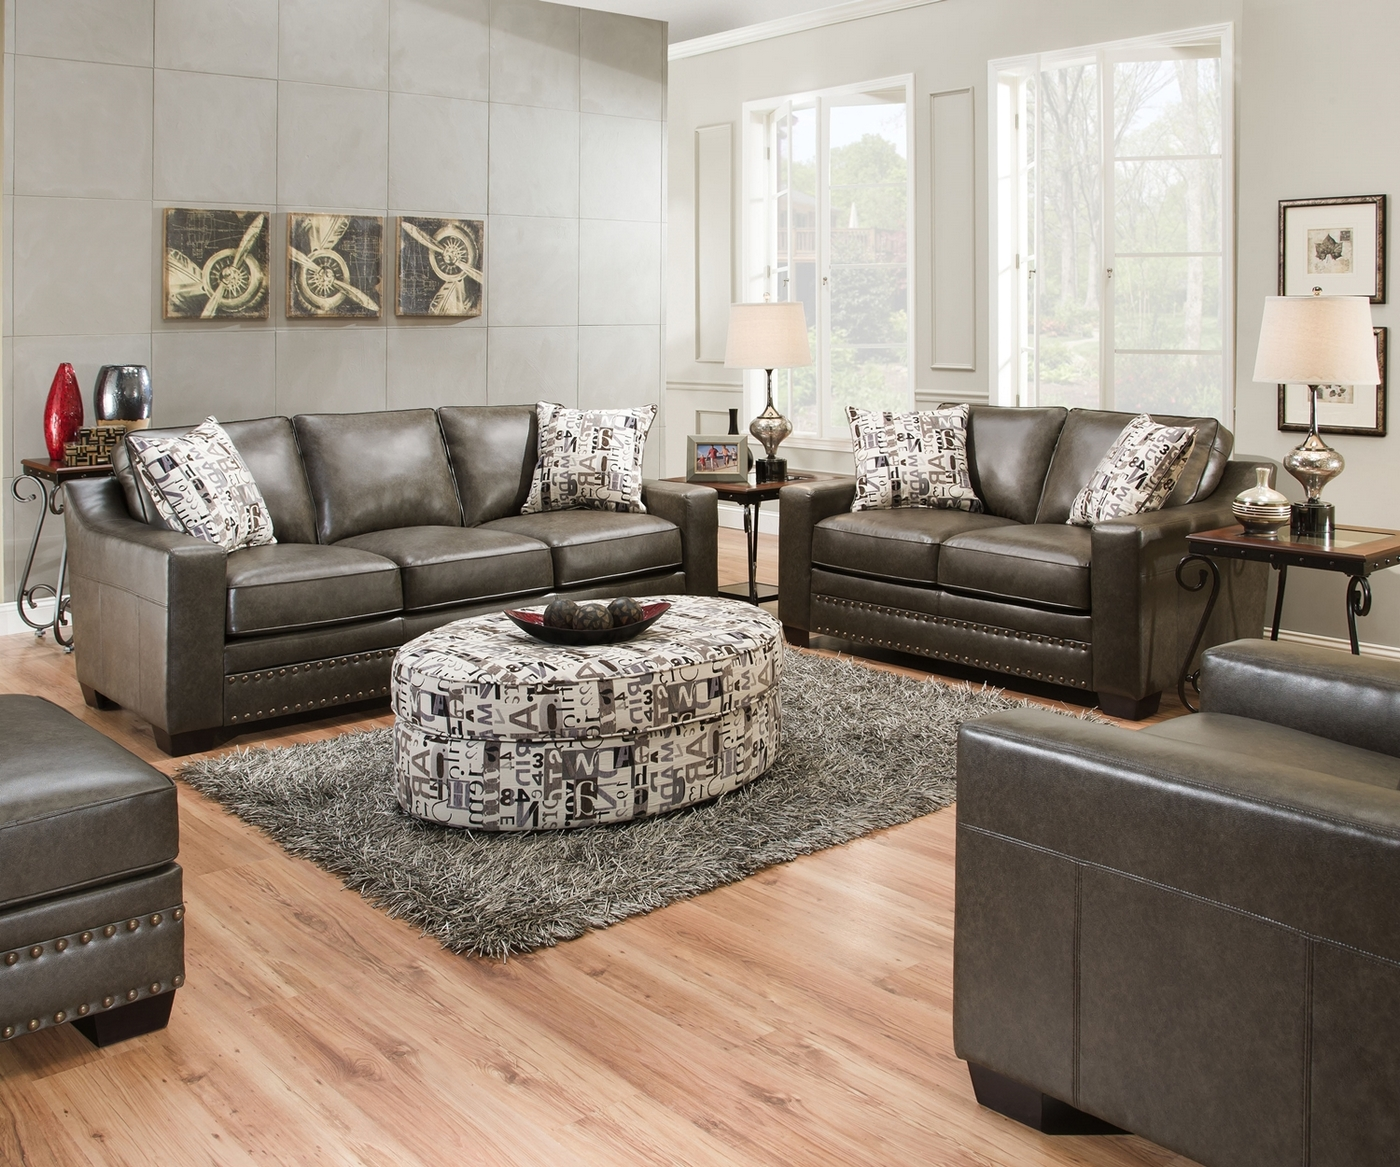 Gray And White Transitional Rustic Living Room With: Slate Gray Sofa & Love Seat W/ Nailhead Trim Transitional